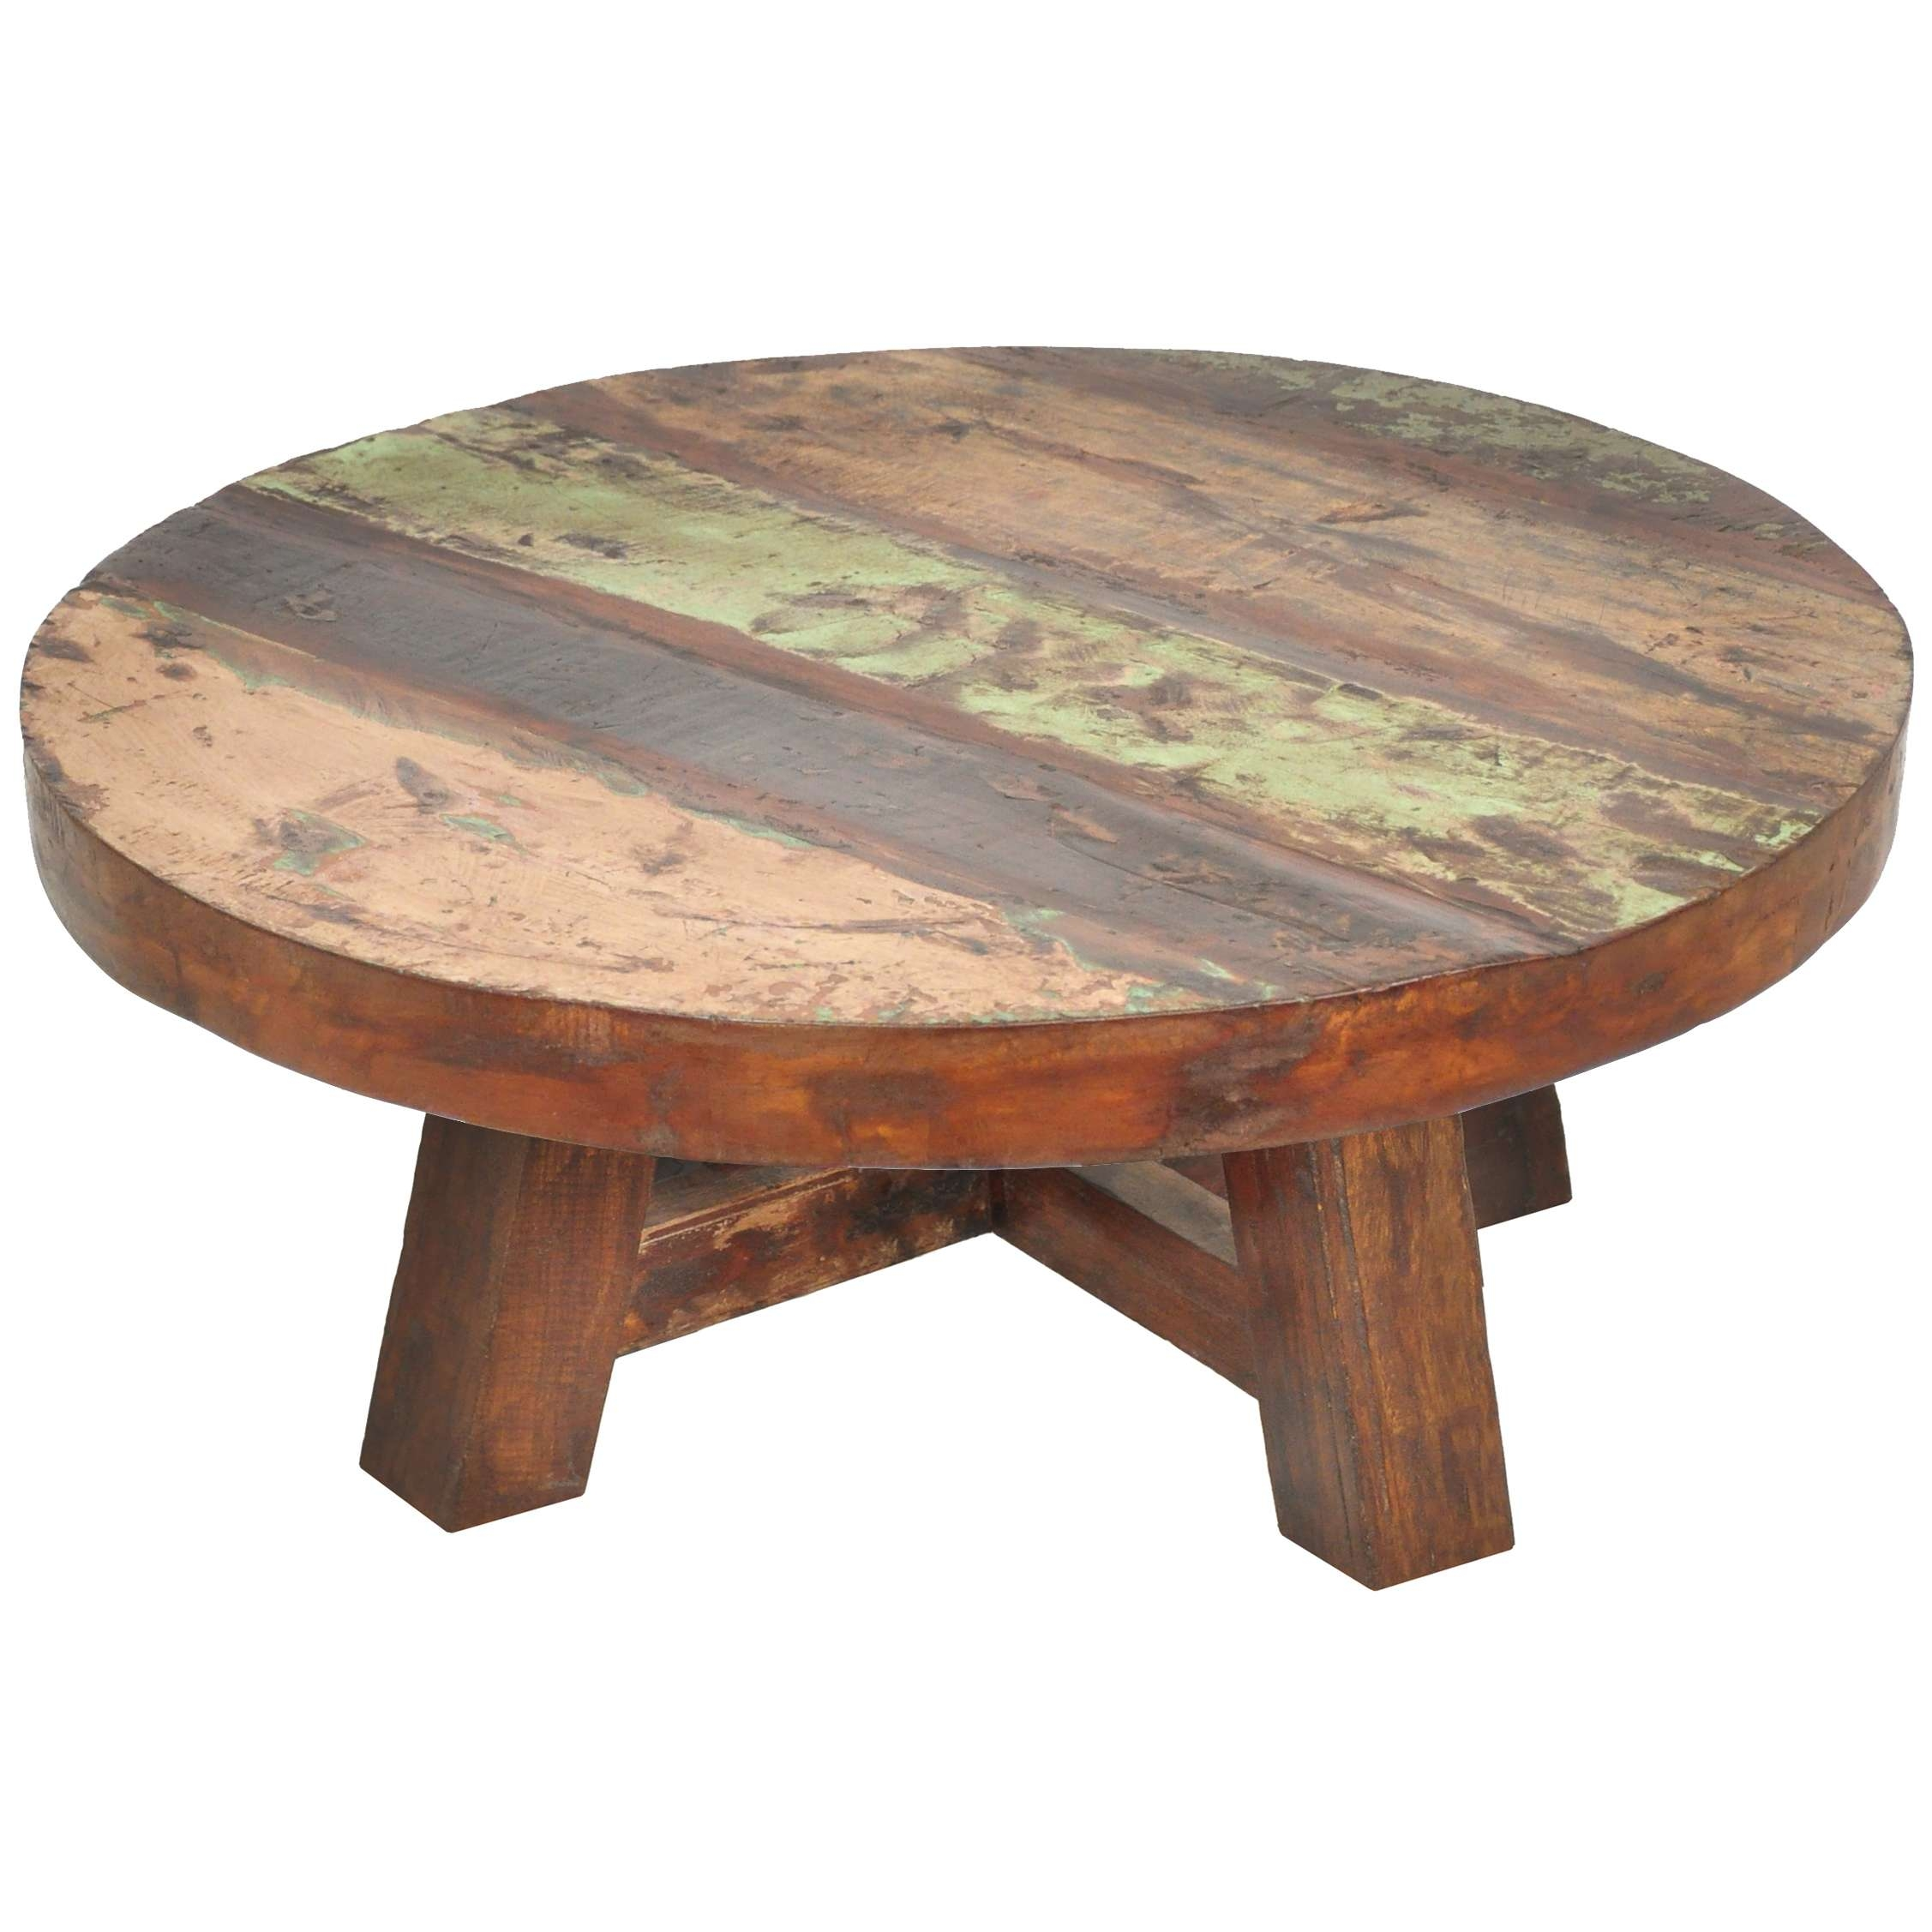 Decorations : Arrangement Reclaimed Wood Coffee Table Small For With Favorite Small Wood Coffee Tables (View 7 of 20)